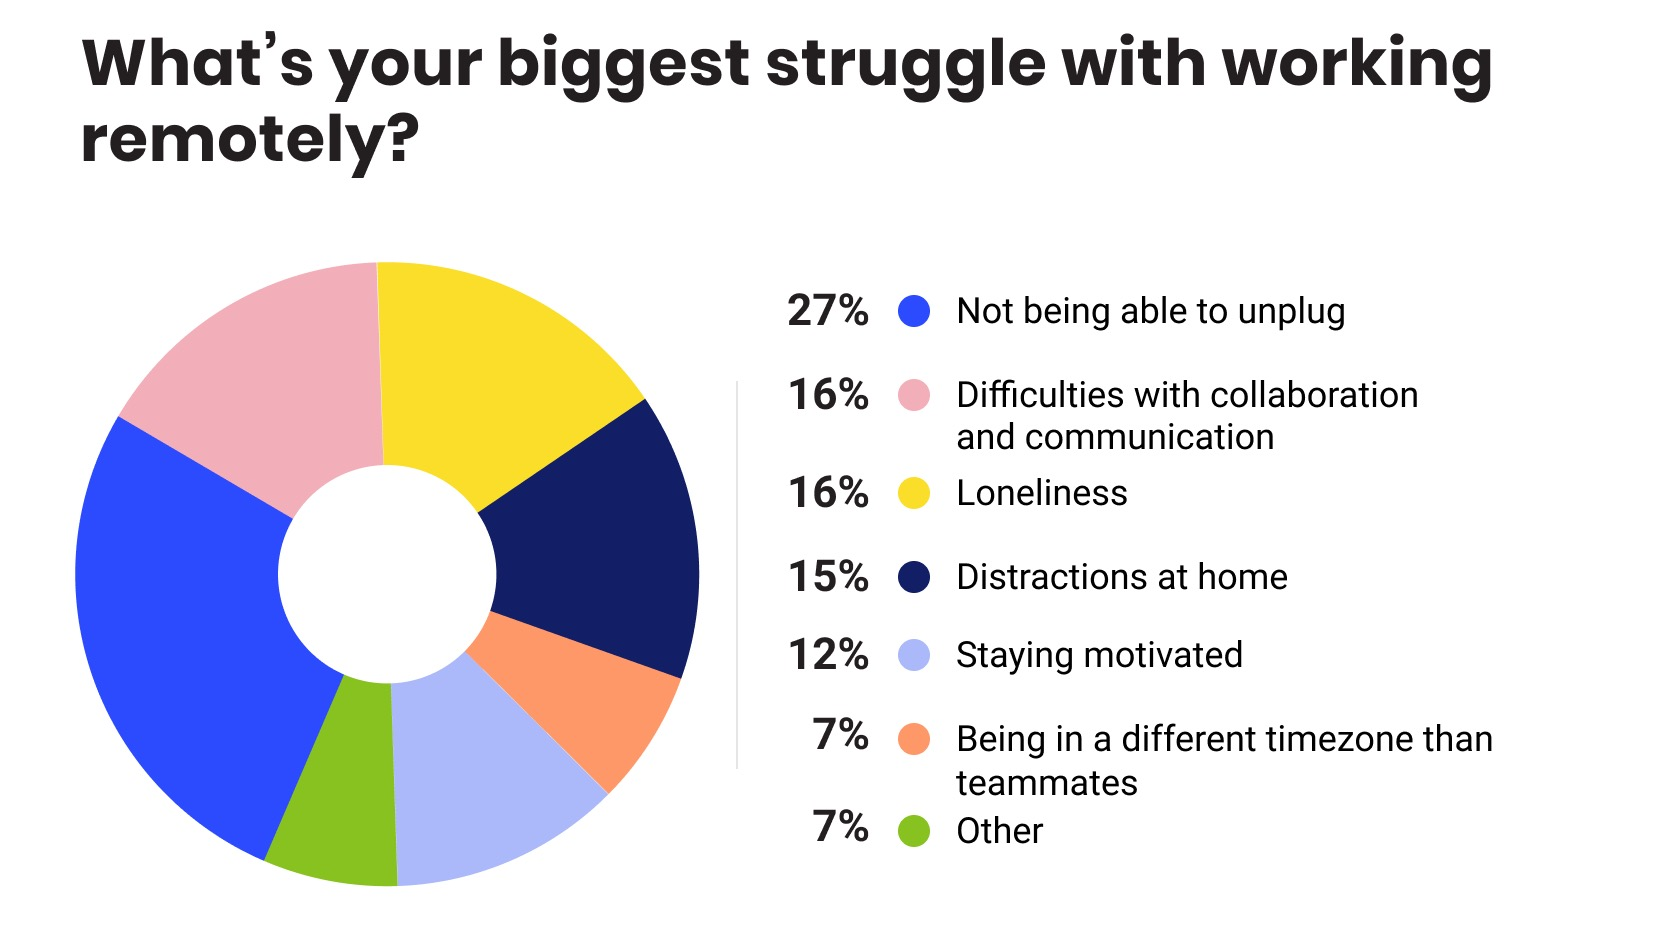 pajdiagram: Whats your biggest struggle with working remotely